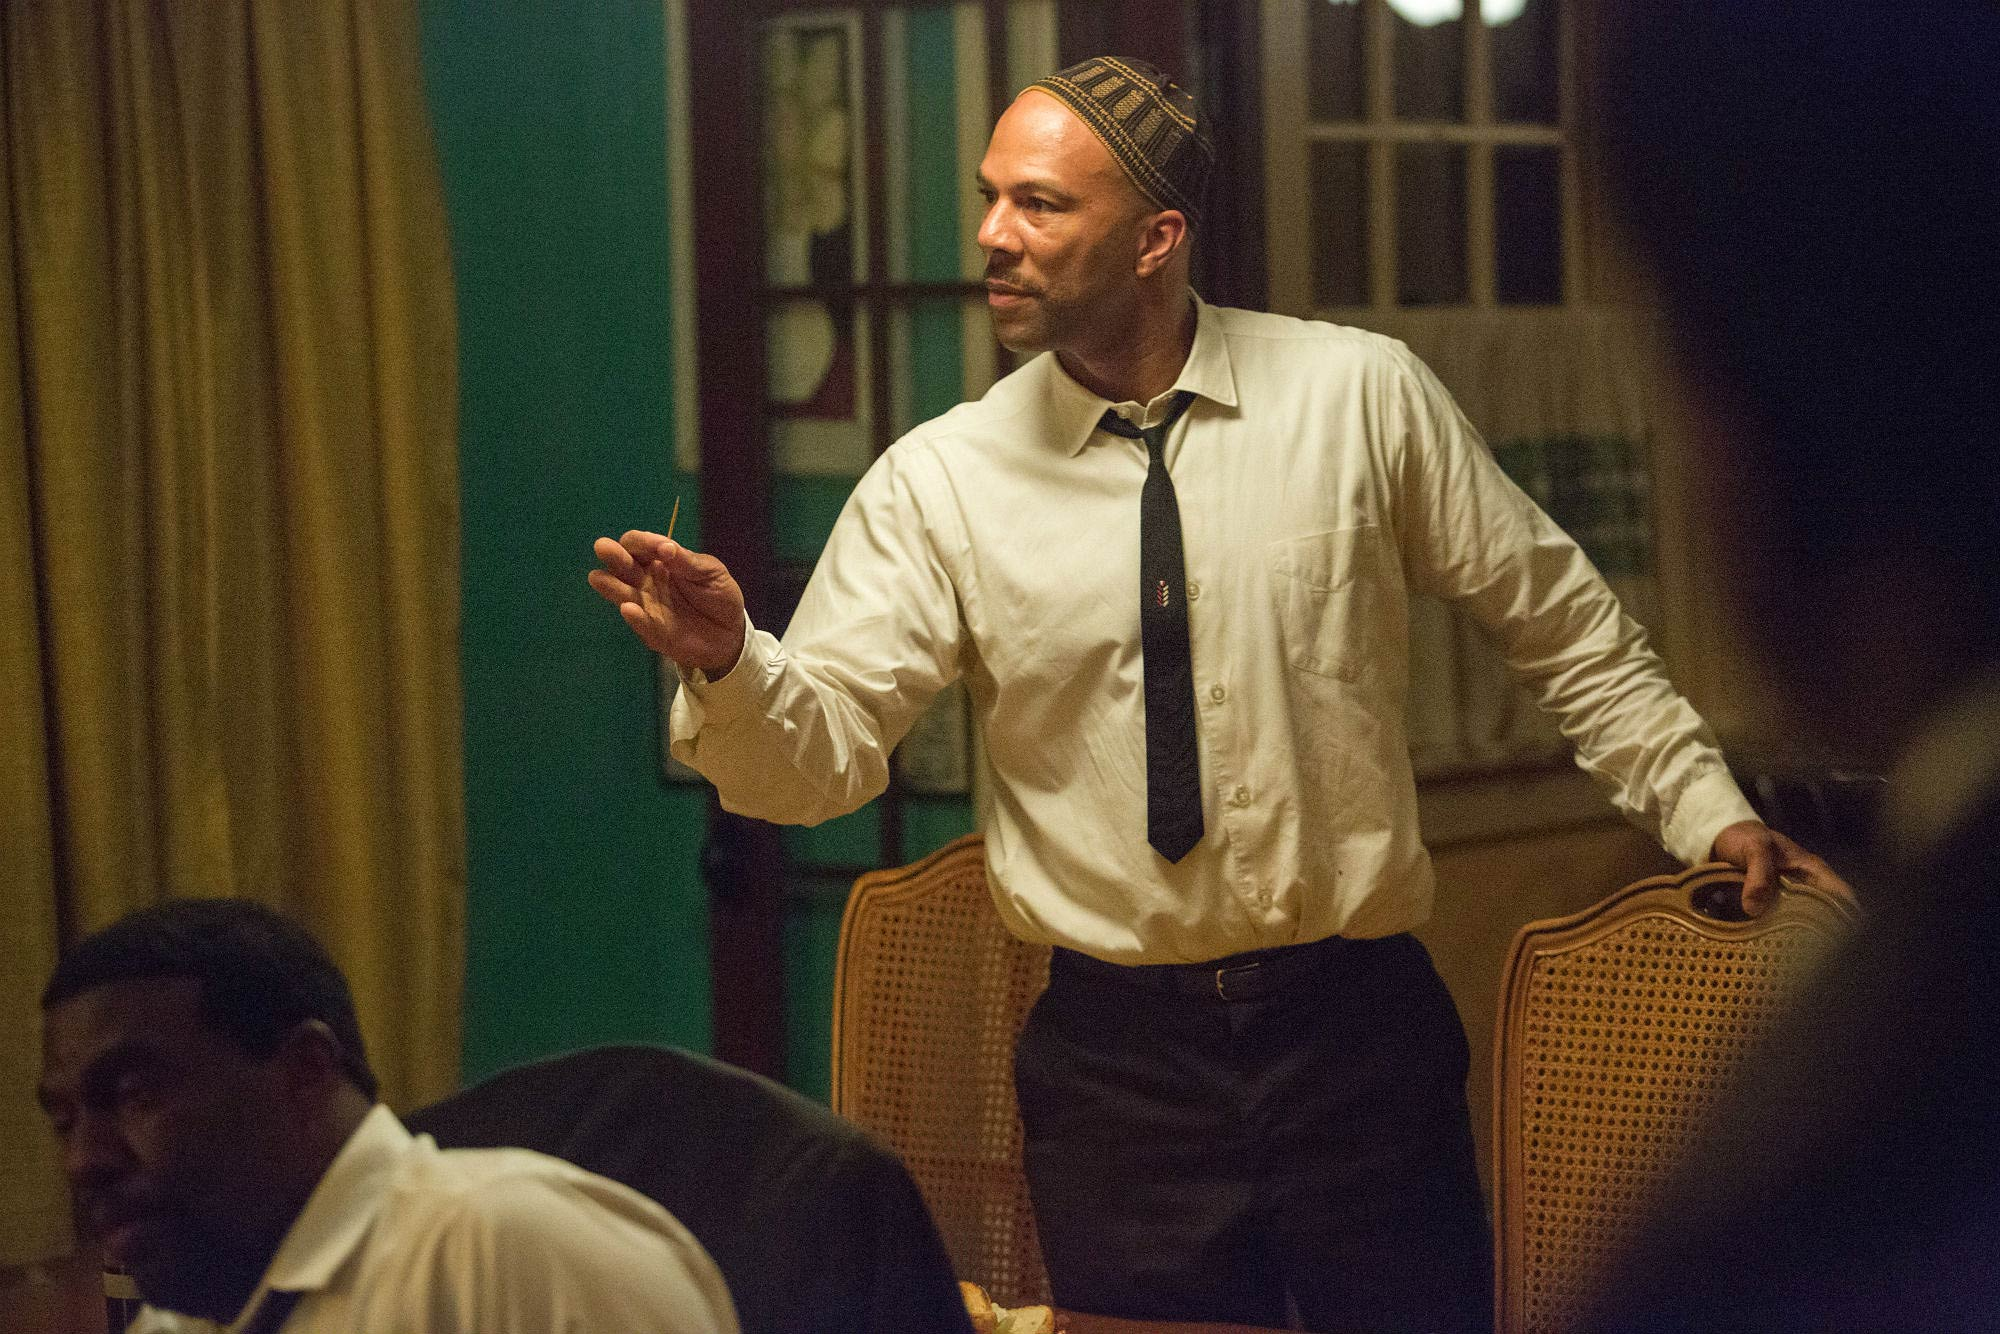 Common as James Bevel in Selma